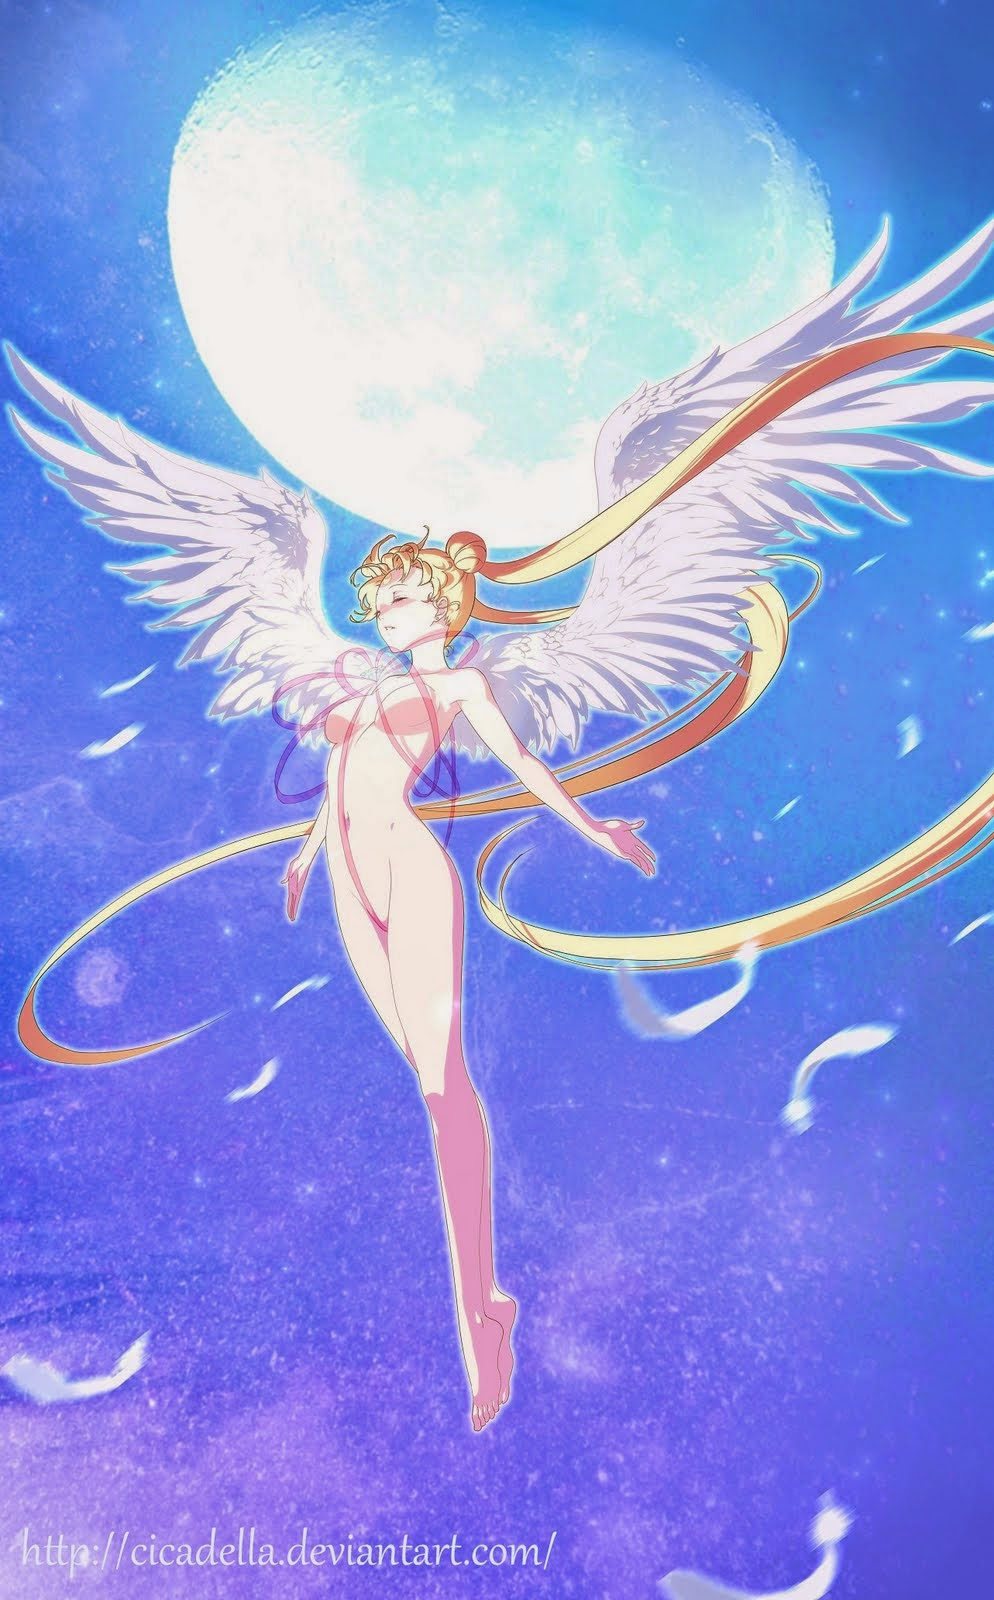 Sailor Moon Bilder - Sailor-Senshide